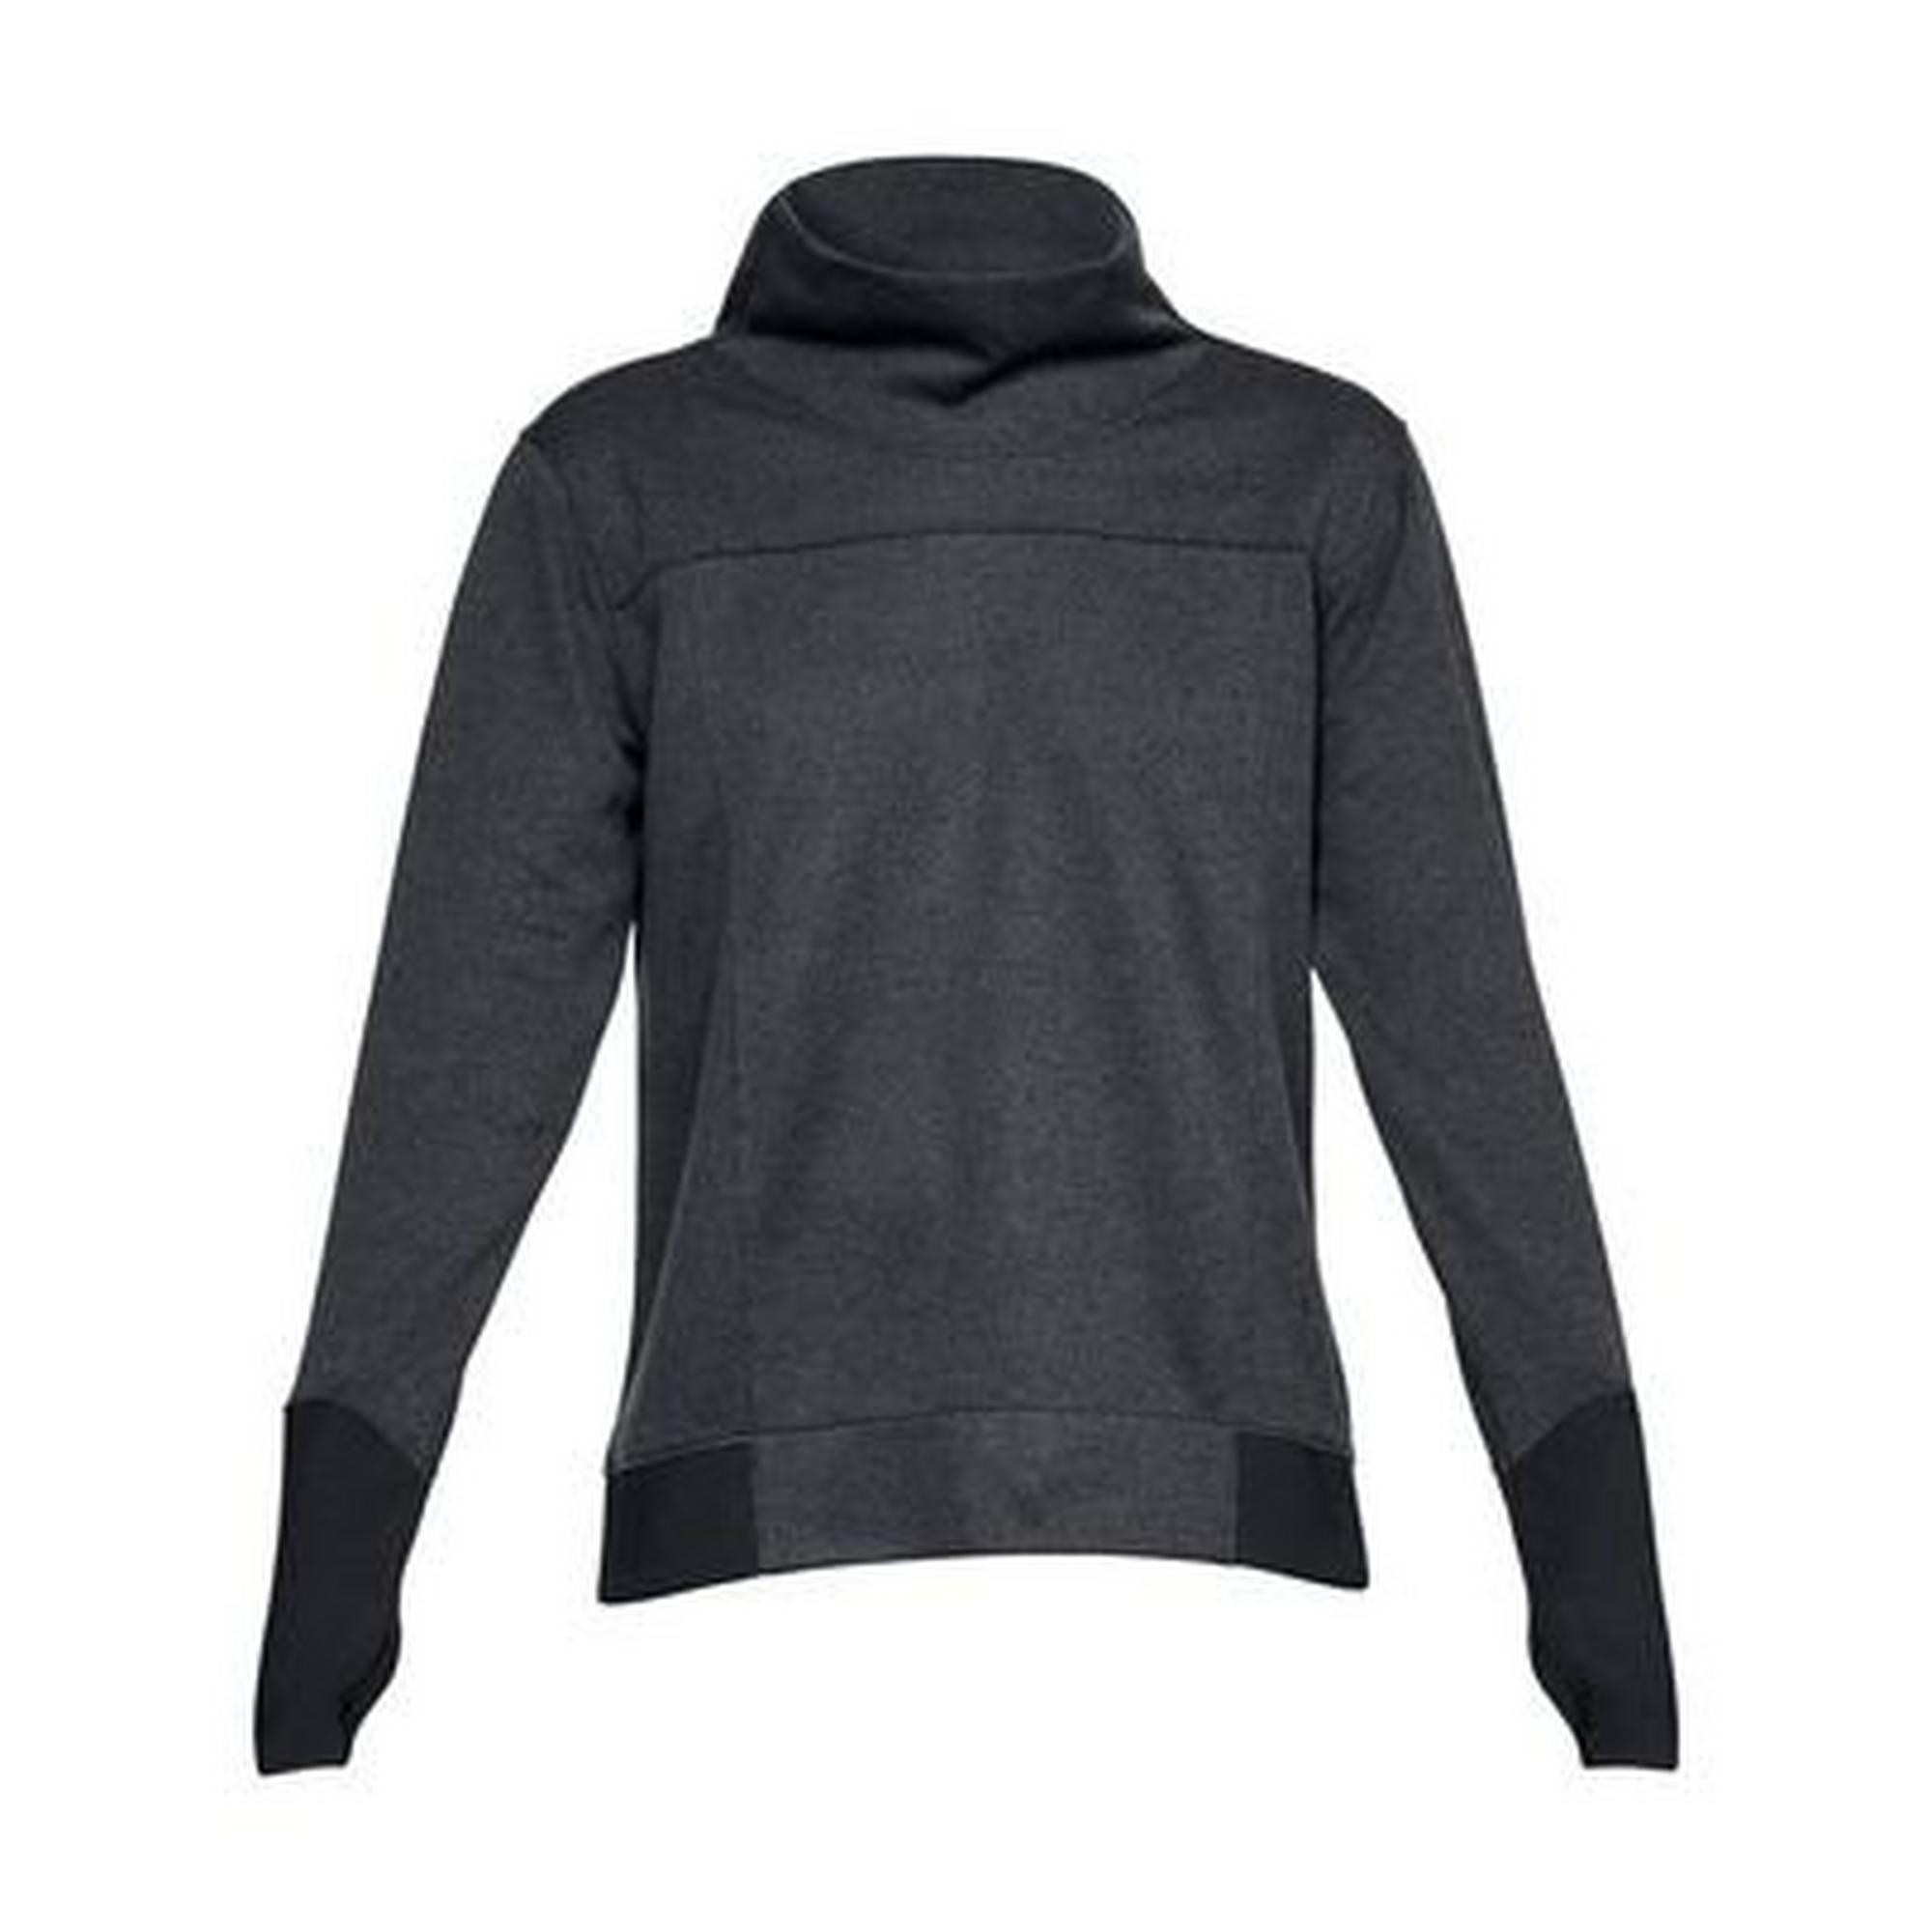 Women's Storm SweaterFleece Long Sleeve Pullover